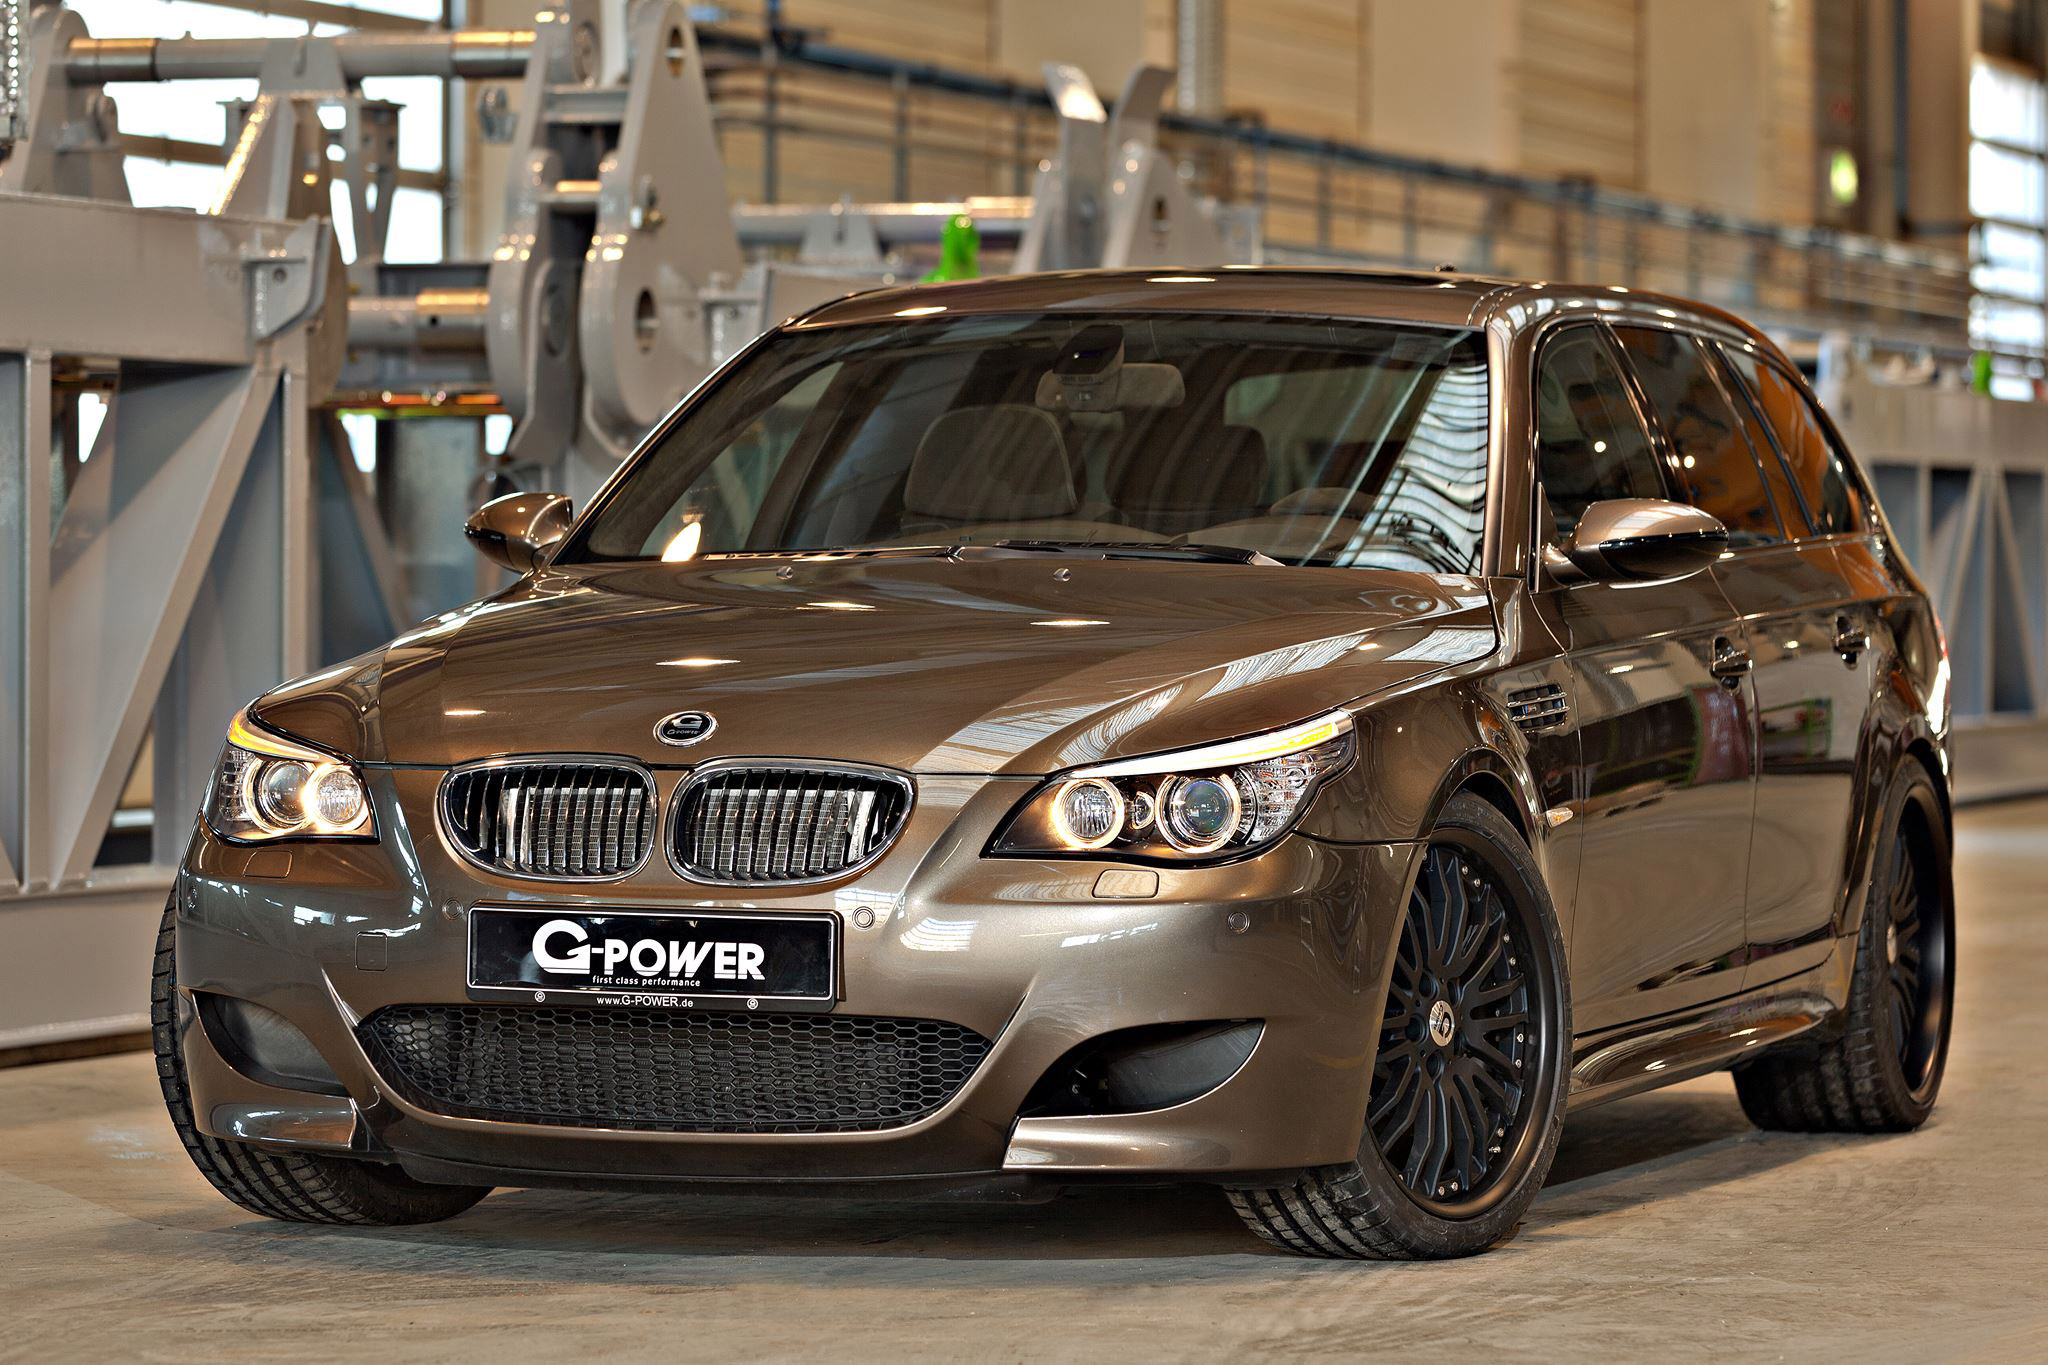 g power hurricane rr bmw m5 e61 touring 820hp and 790nm. Black Bedroom Furniture Sets. Home Design Ideas